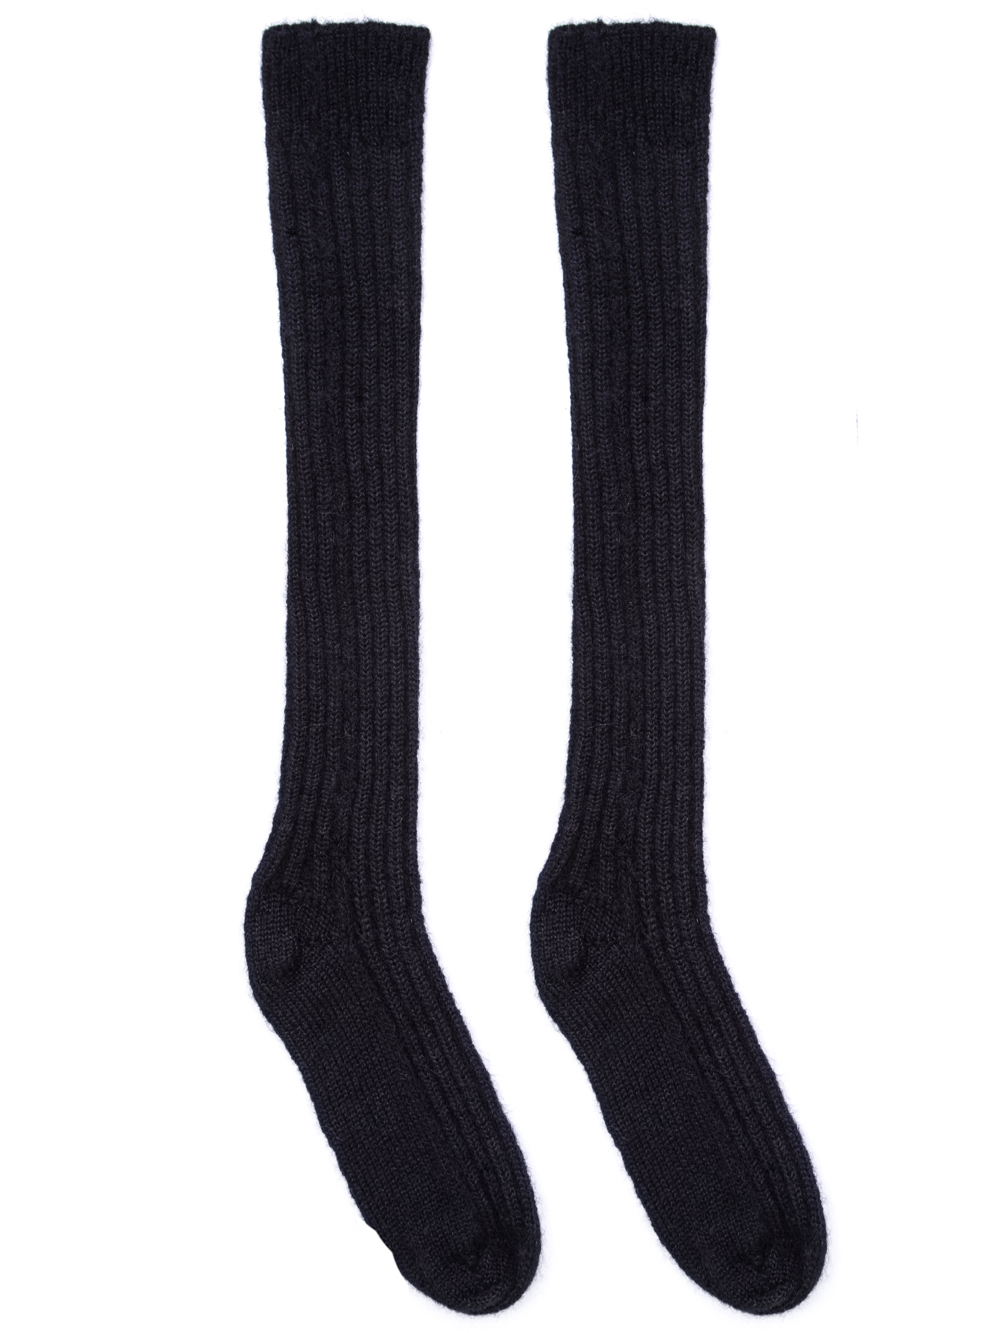 RICK OWENS FW18 SISYPHUS OFF-THE-RUNWAY RIBBED SOCKS IN BLACK.